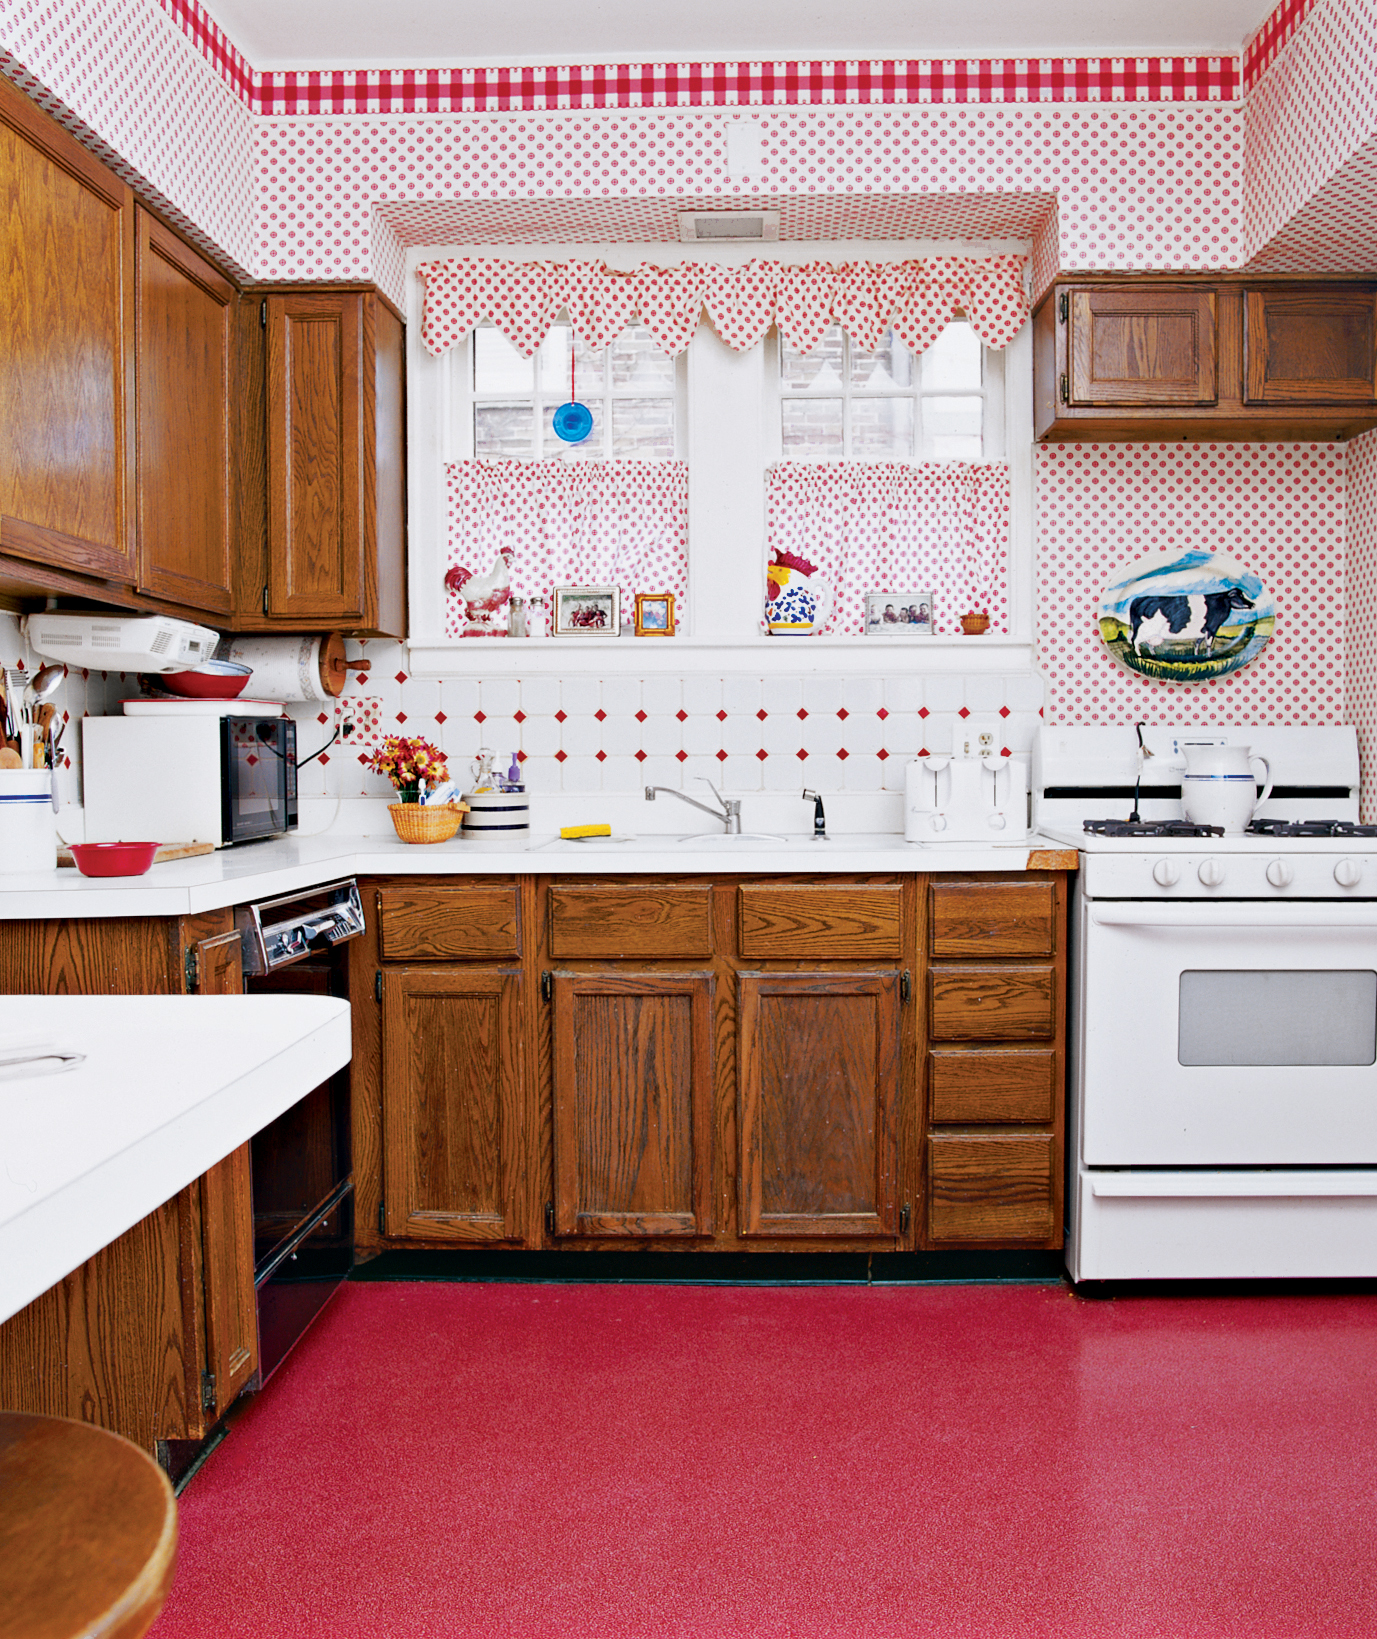 Messy Kitchen Counter: 16 Before-and-After Room Makeovers